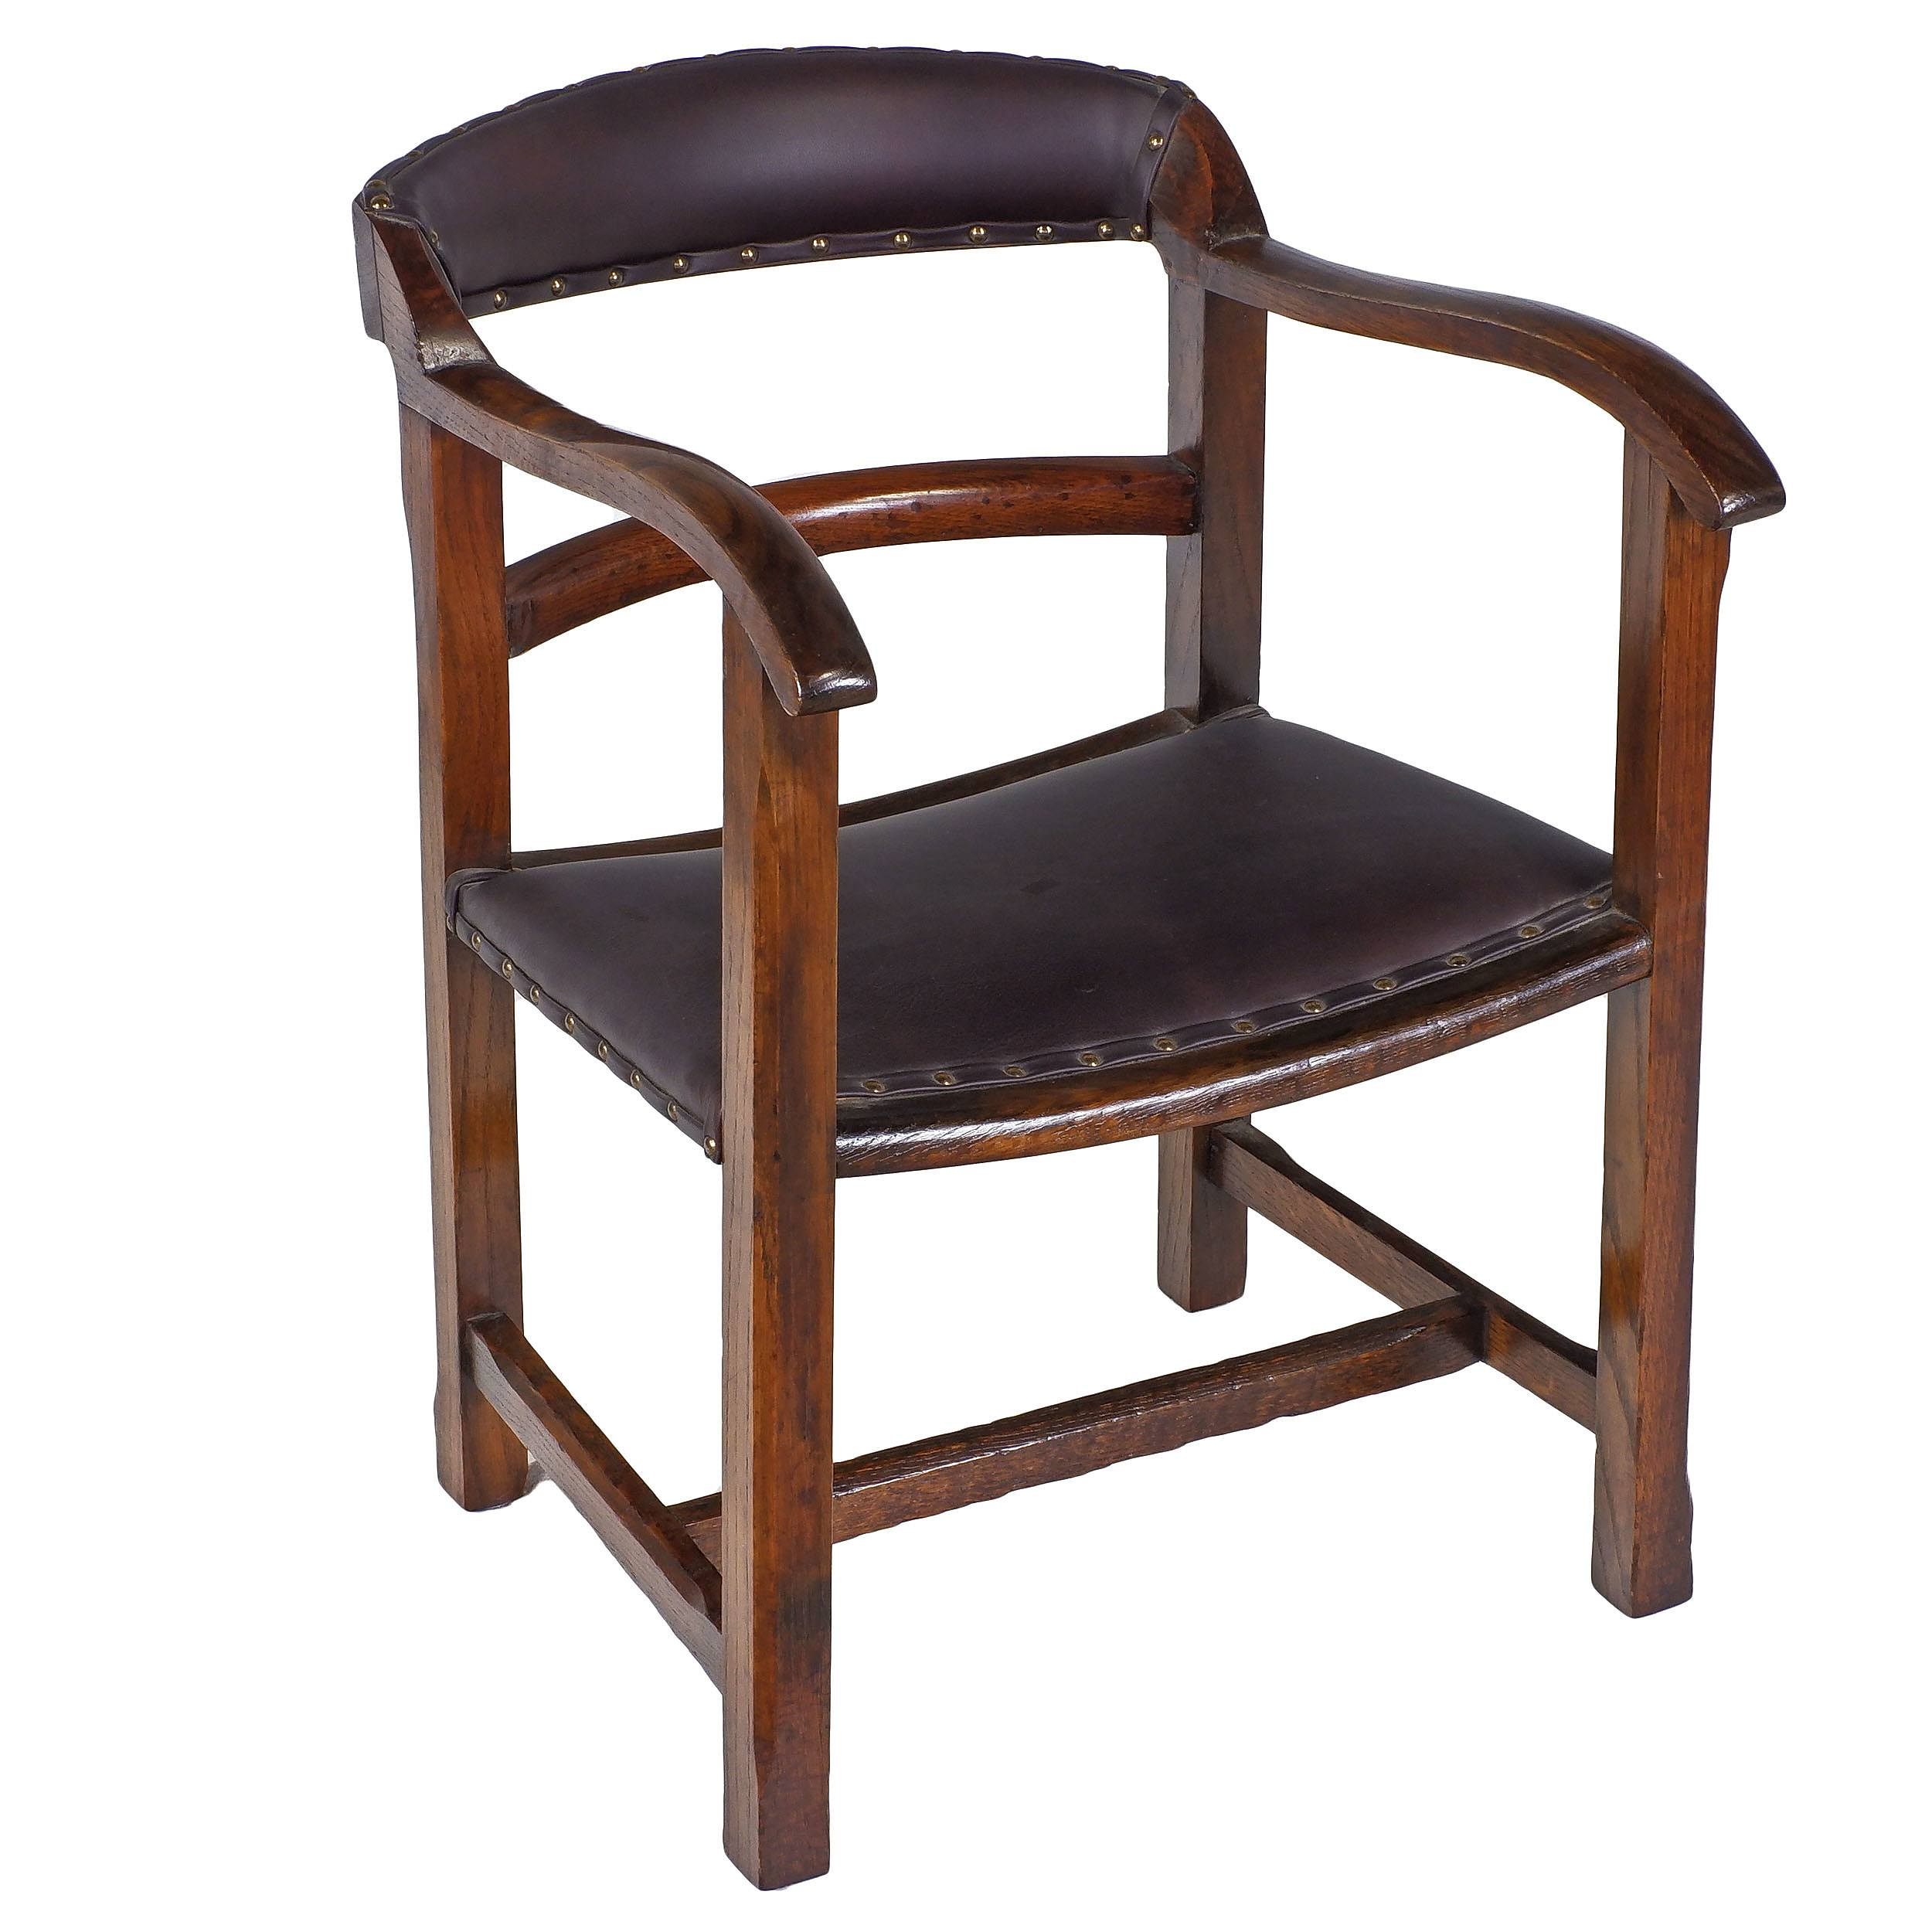 'Oak Captains Desk Chair 2nd Quarter 20th Century'